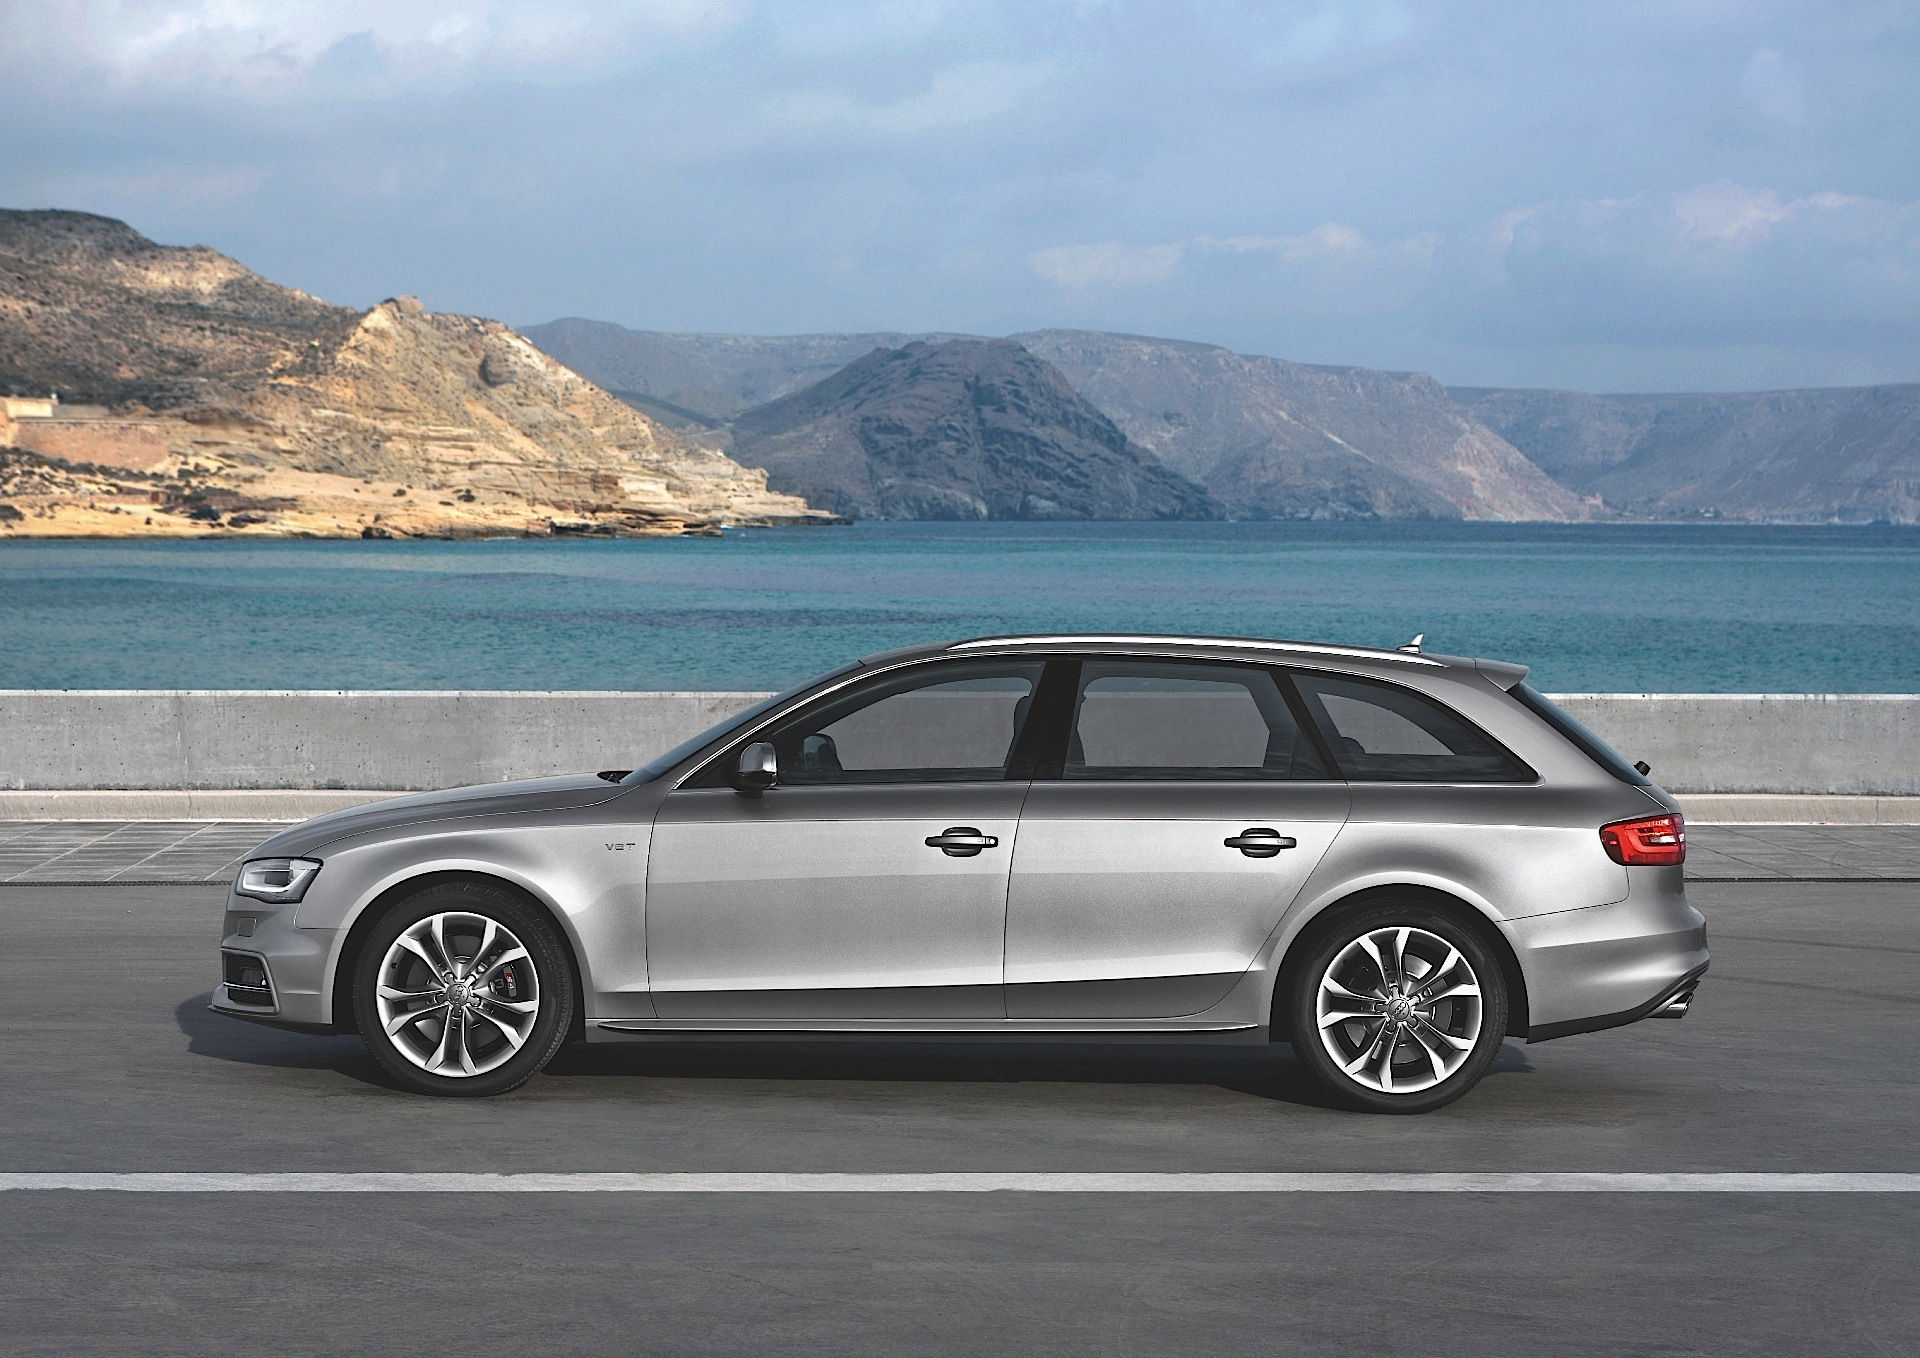 audi s4 avant specs 2008 2009 2010 2011 2012 autoevolution. Black Bedroom Furniture Sets. Home Design Ideas